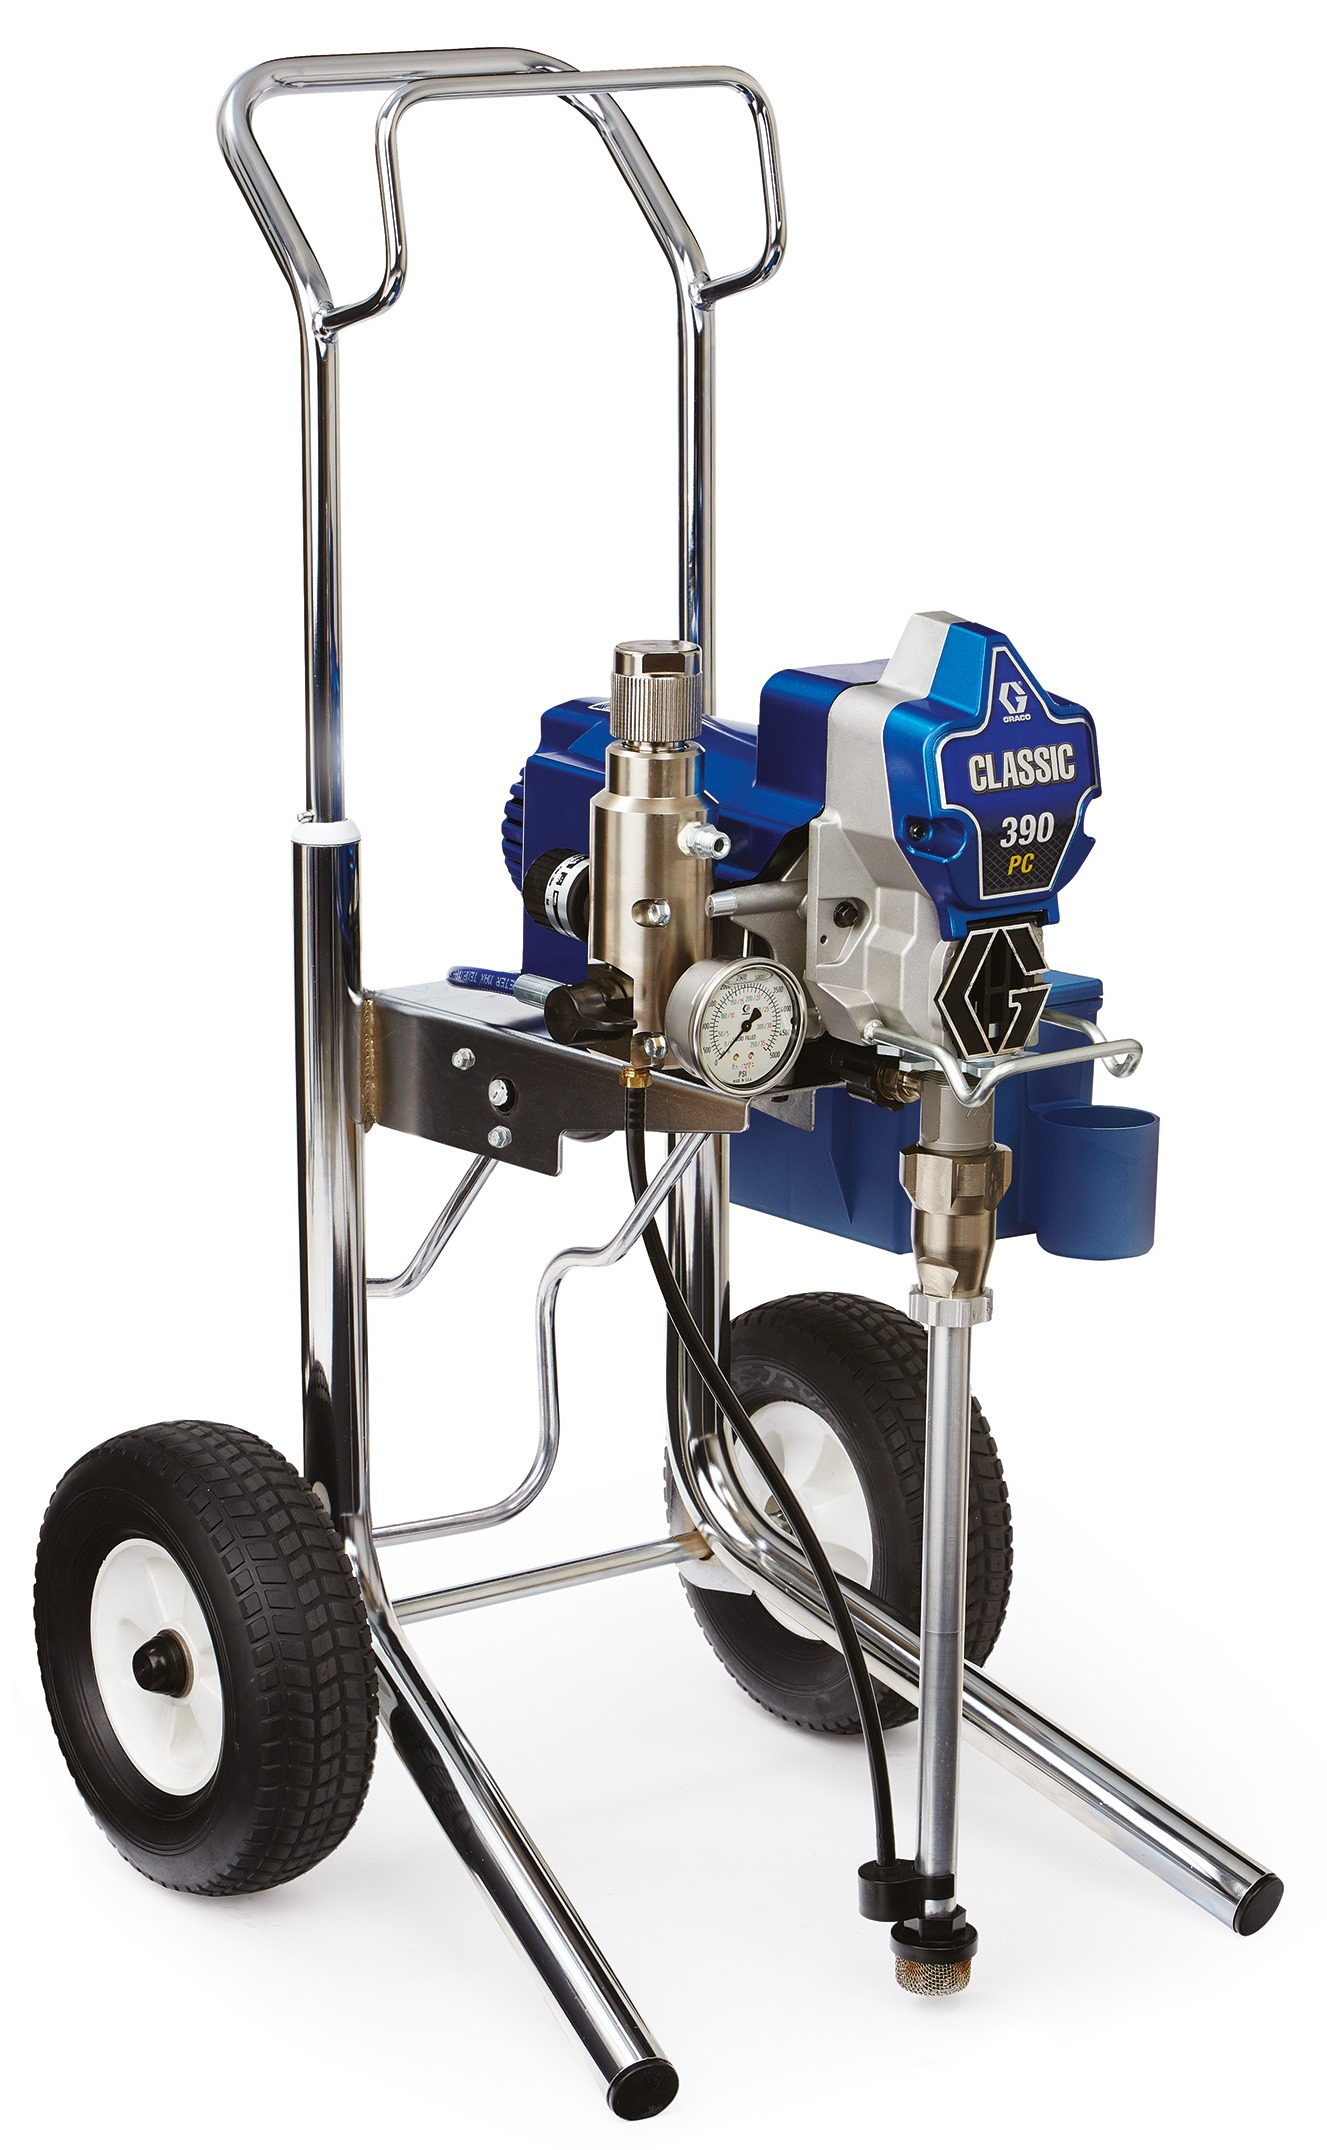 Graco Classic 390 PC hi-boy